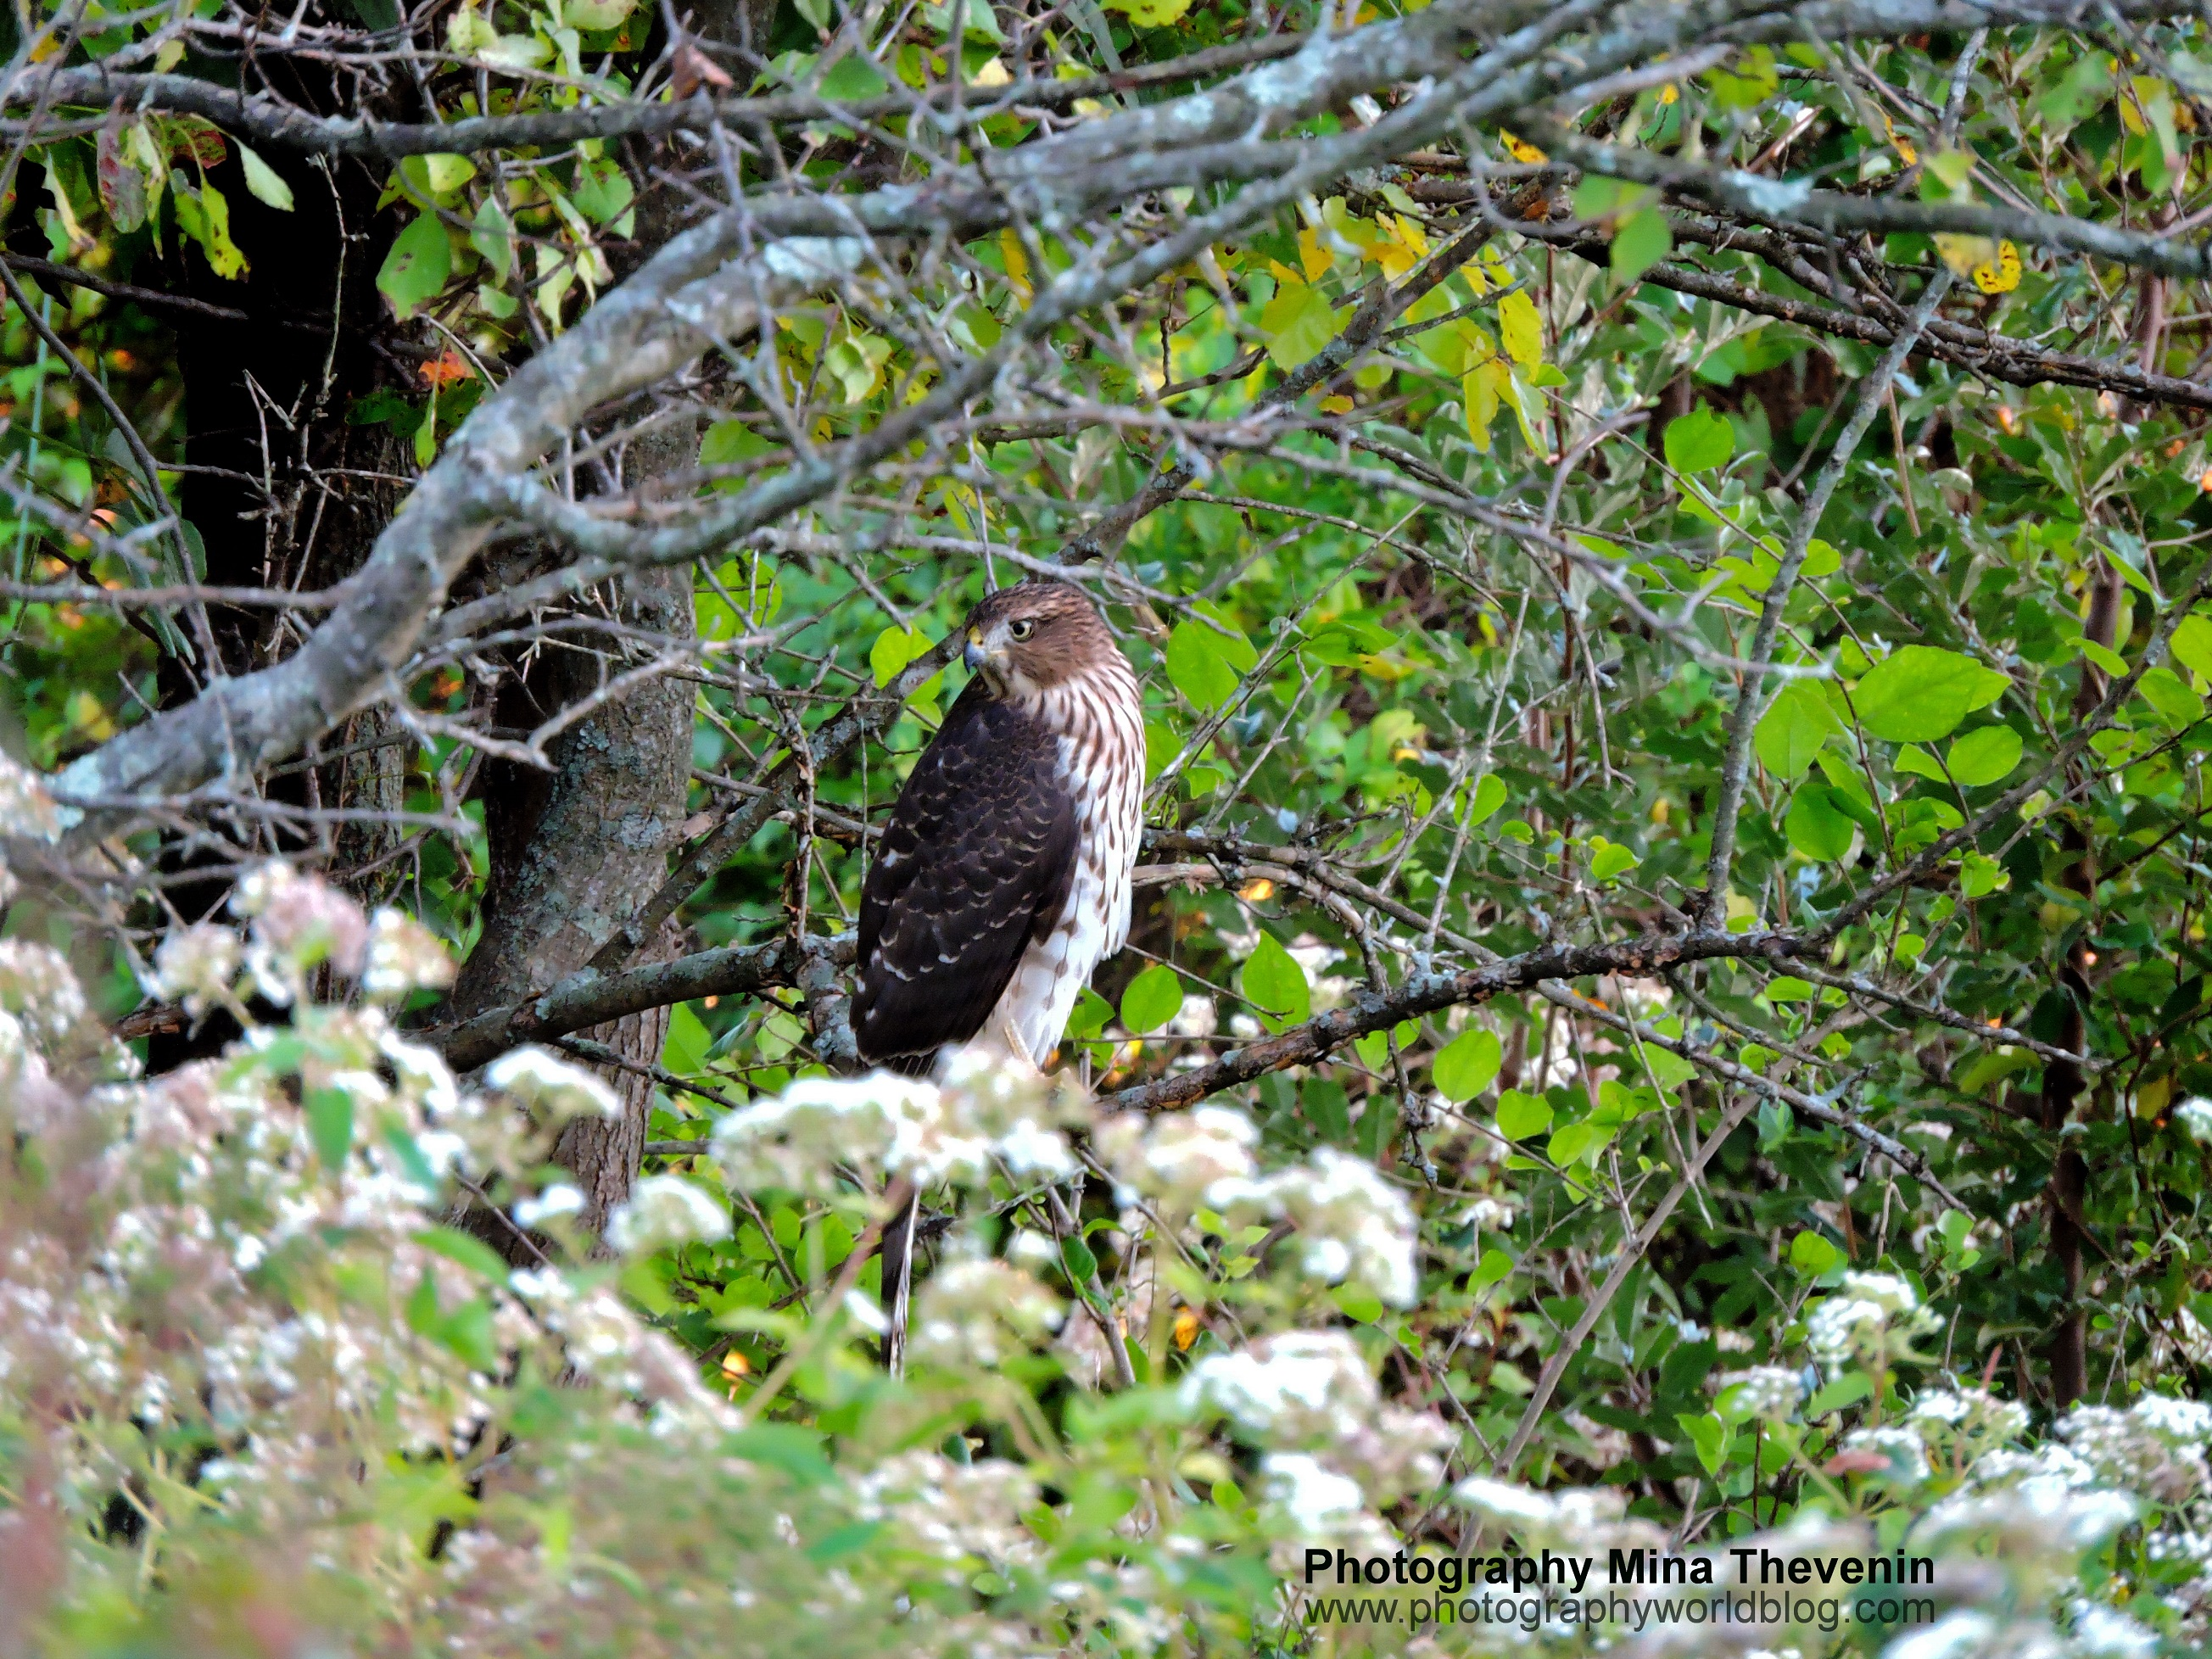 © Cooper's Hawk in Tree Evening . Photograph by Mina Thevenin. Photography World, www.photographyworld.org